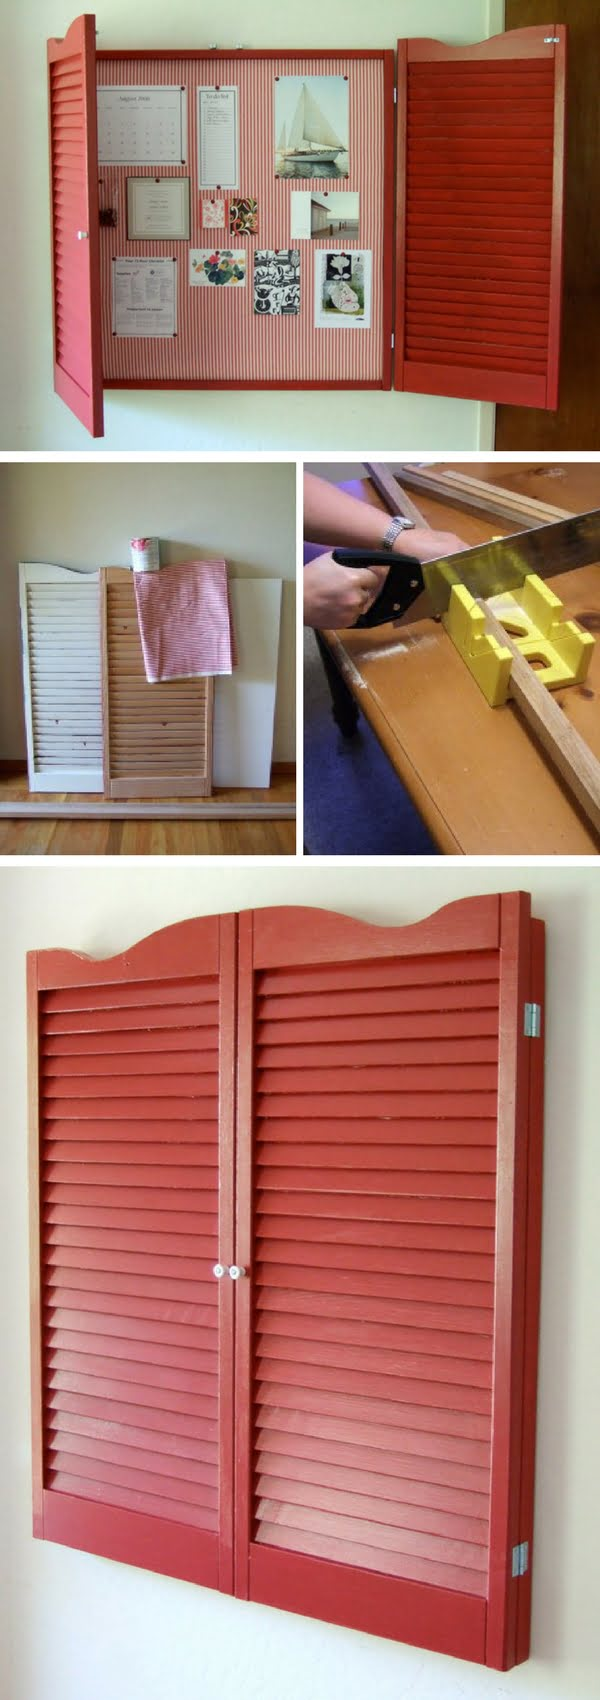 How to build this DIY bulletin board from old shutters